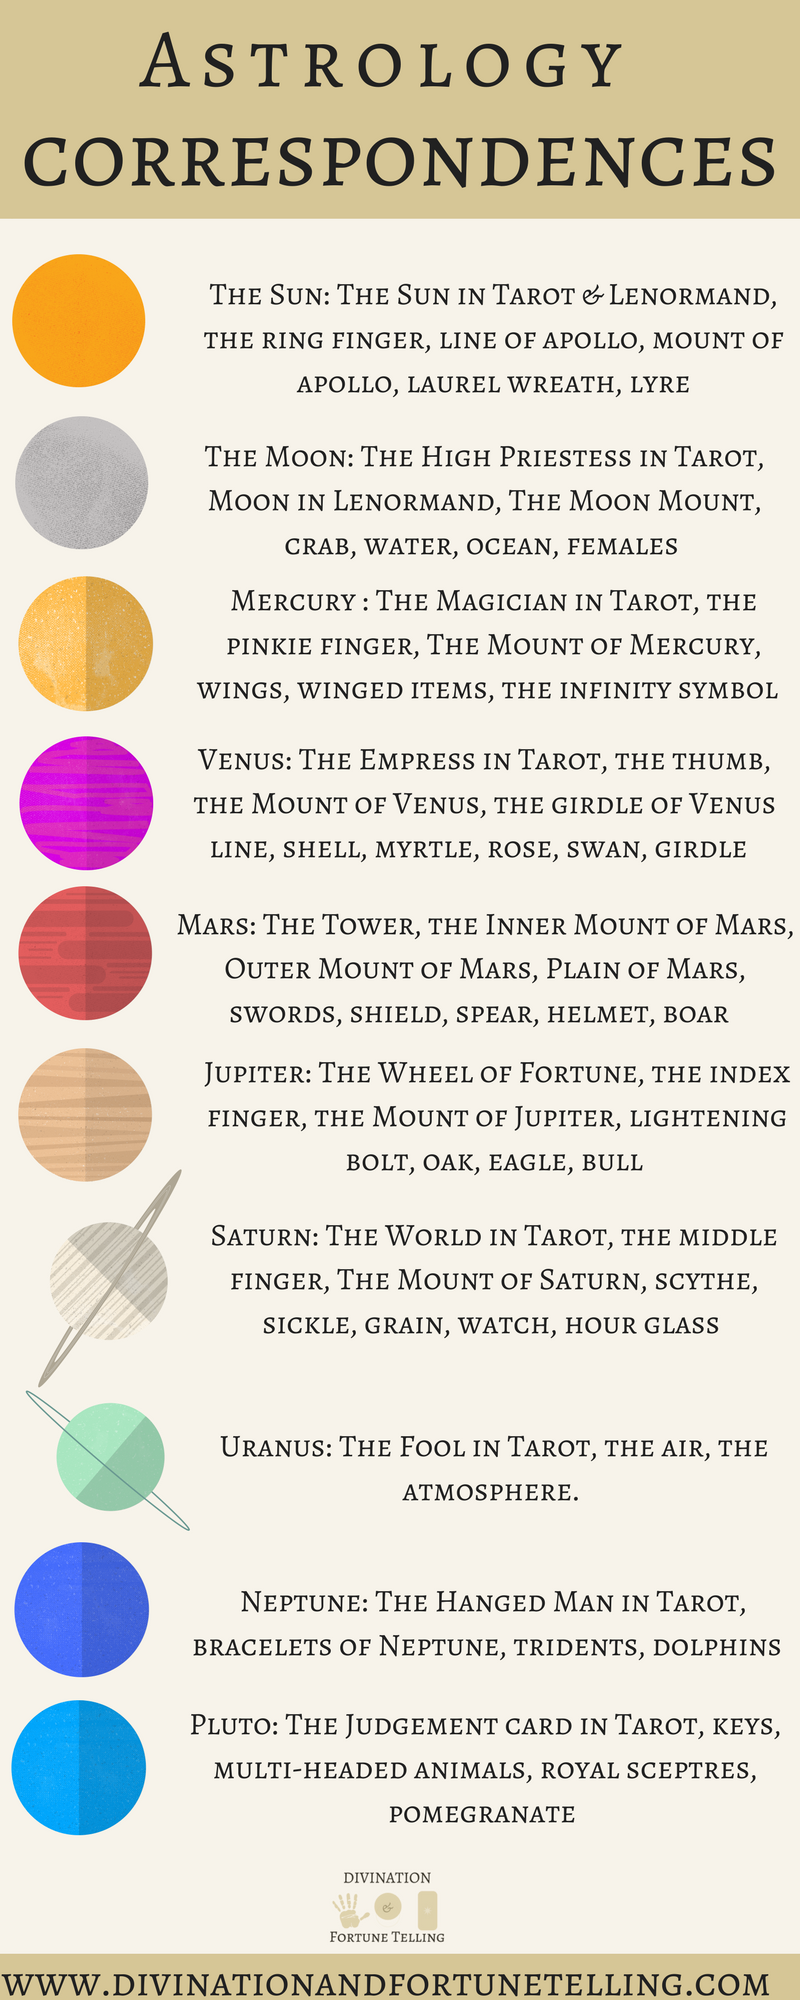 Poster: The astrology correspondences for the planets. This chart is an illustration of what each planet means in Tarot, palmistry and dream meanings, crystal ball reading and gypsy fortune telling tea cup reading taken from the mythology of their gods and goddess. If you're wanting to learn divination then one way to do so is by learning the meaning of the planets and zodiac. Here, we cover The Sun, Moon, Mercury, Mars, Venus, Jupiter, Saturn, Neptune, Pluto and Uranus.